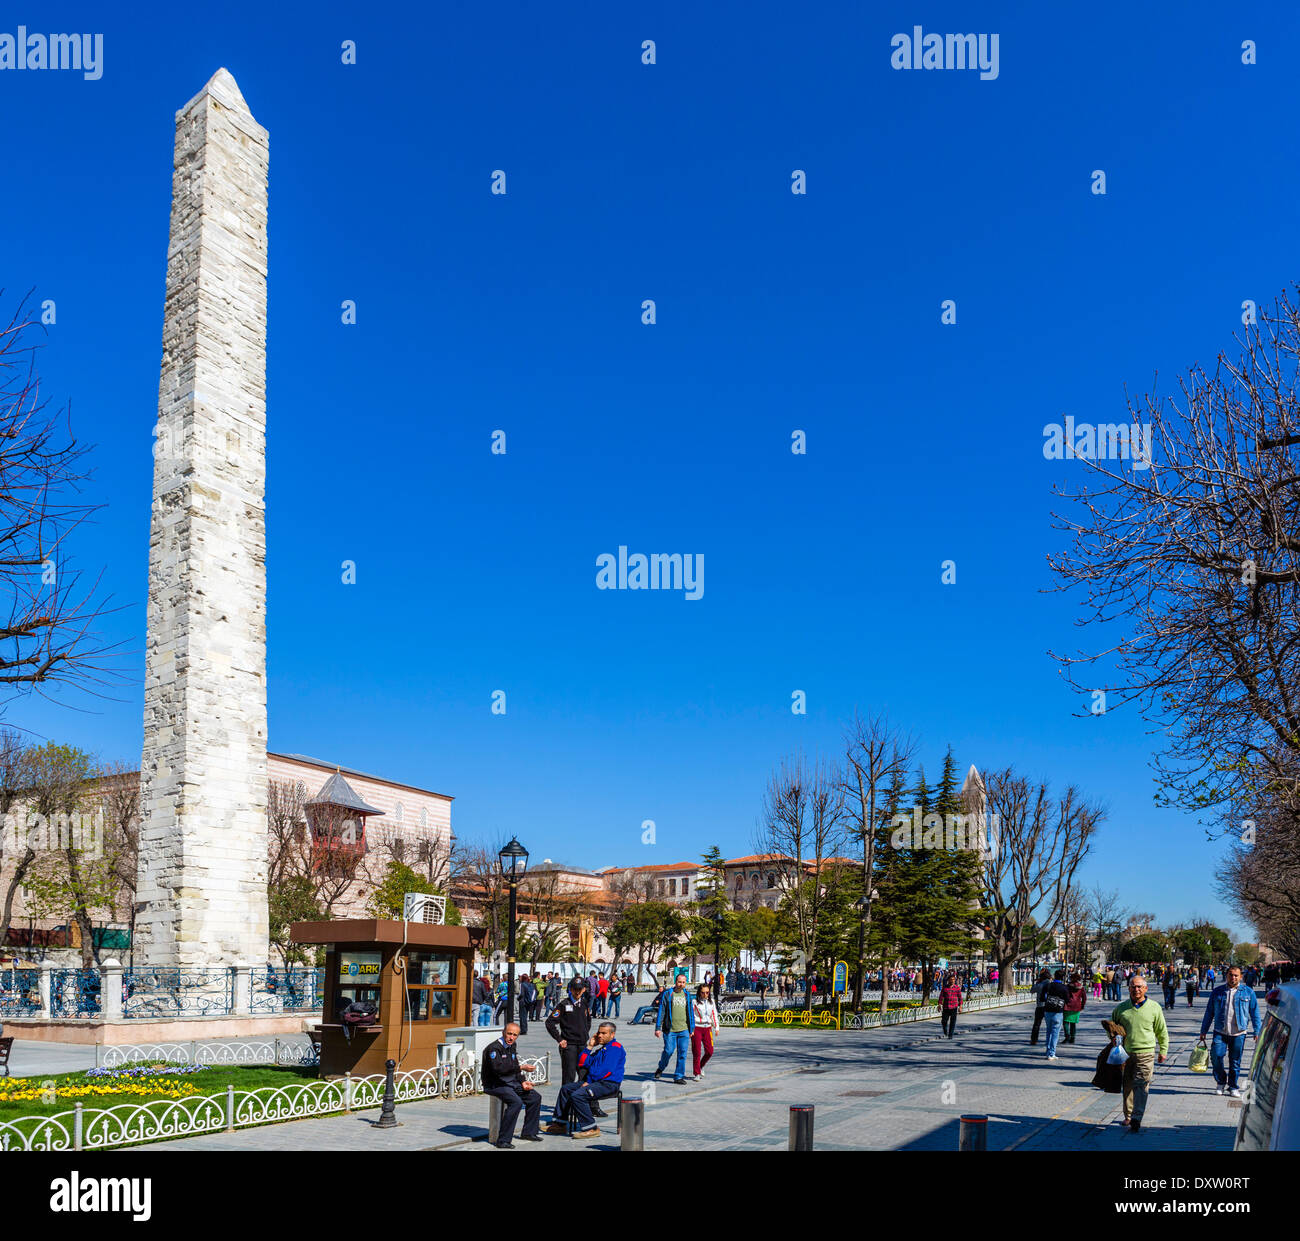 View down the Hippodrome (At Meydani) with the Serpentine Column in the foreground, Sultanahmet district, Istanbul,Turkey - Stock Image